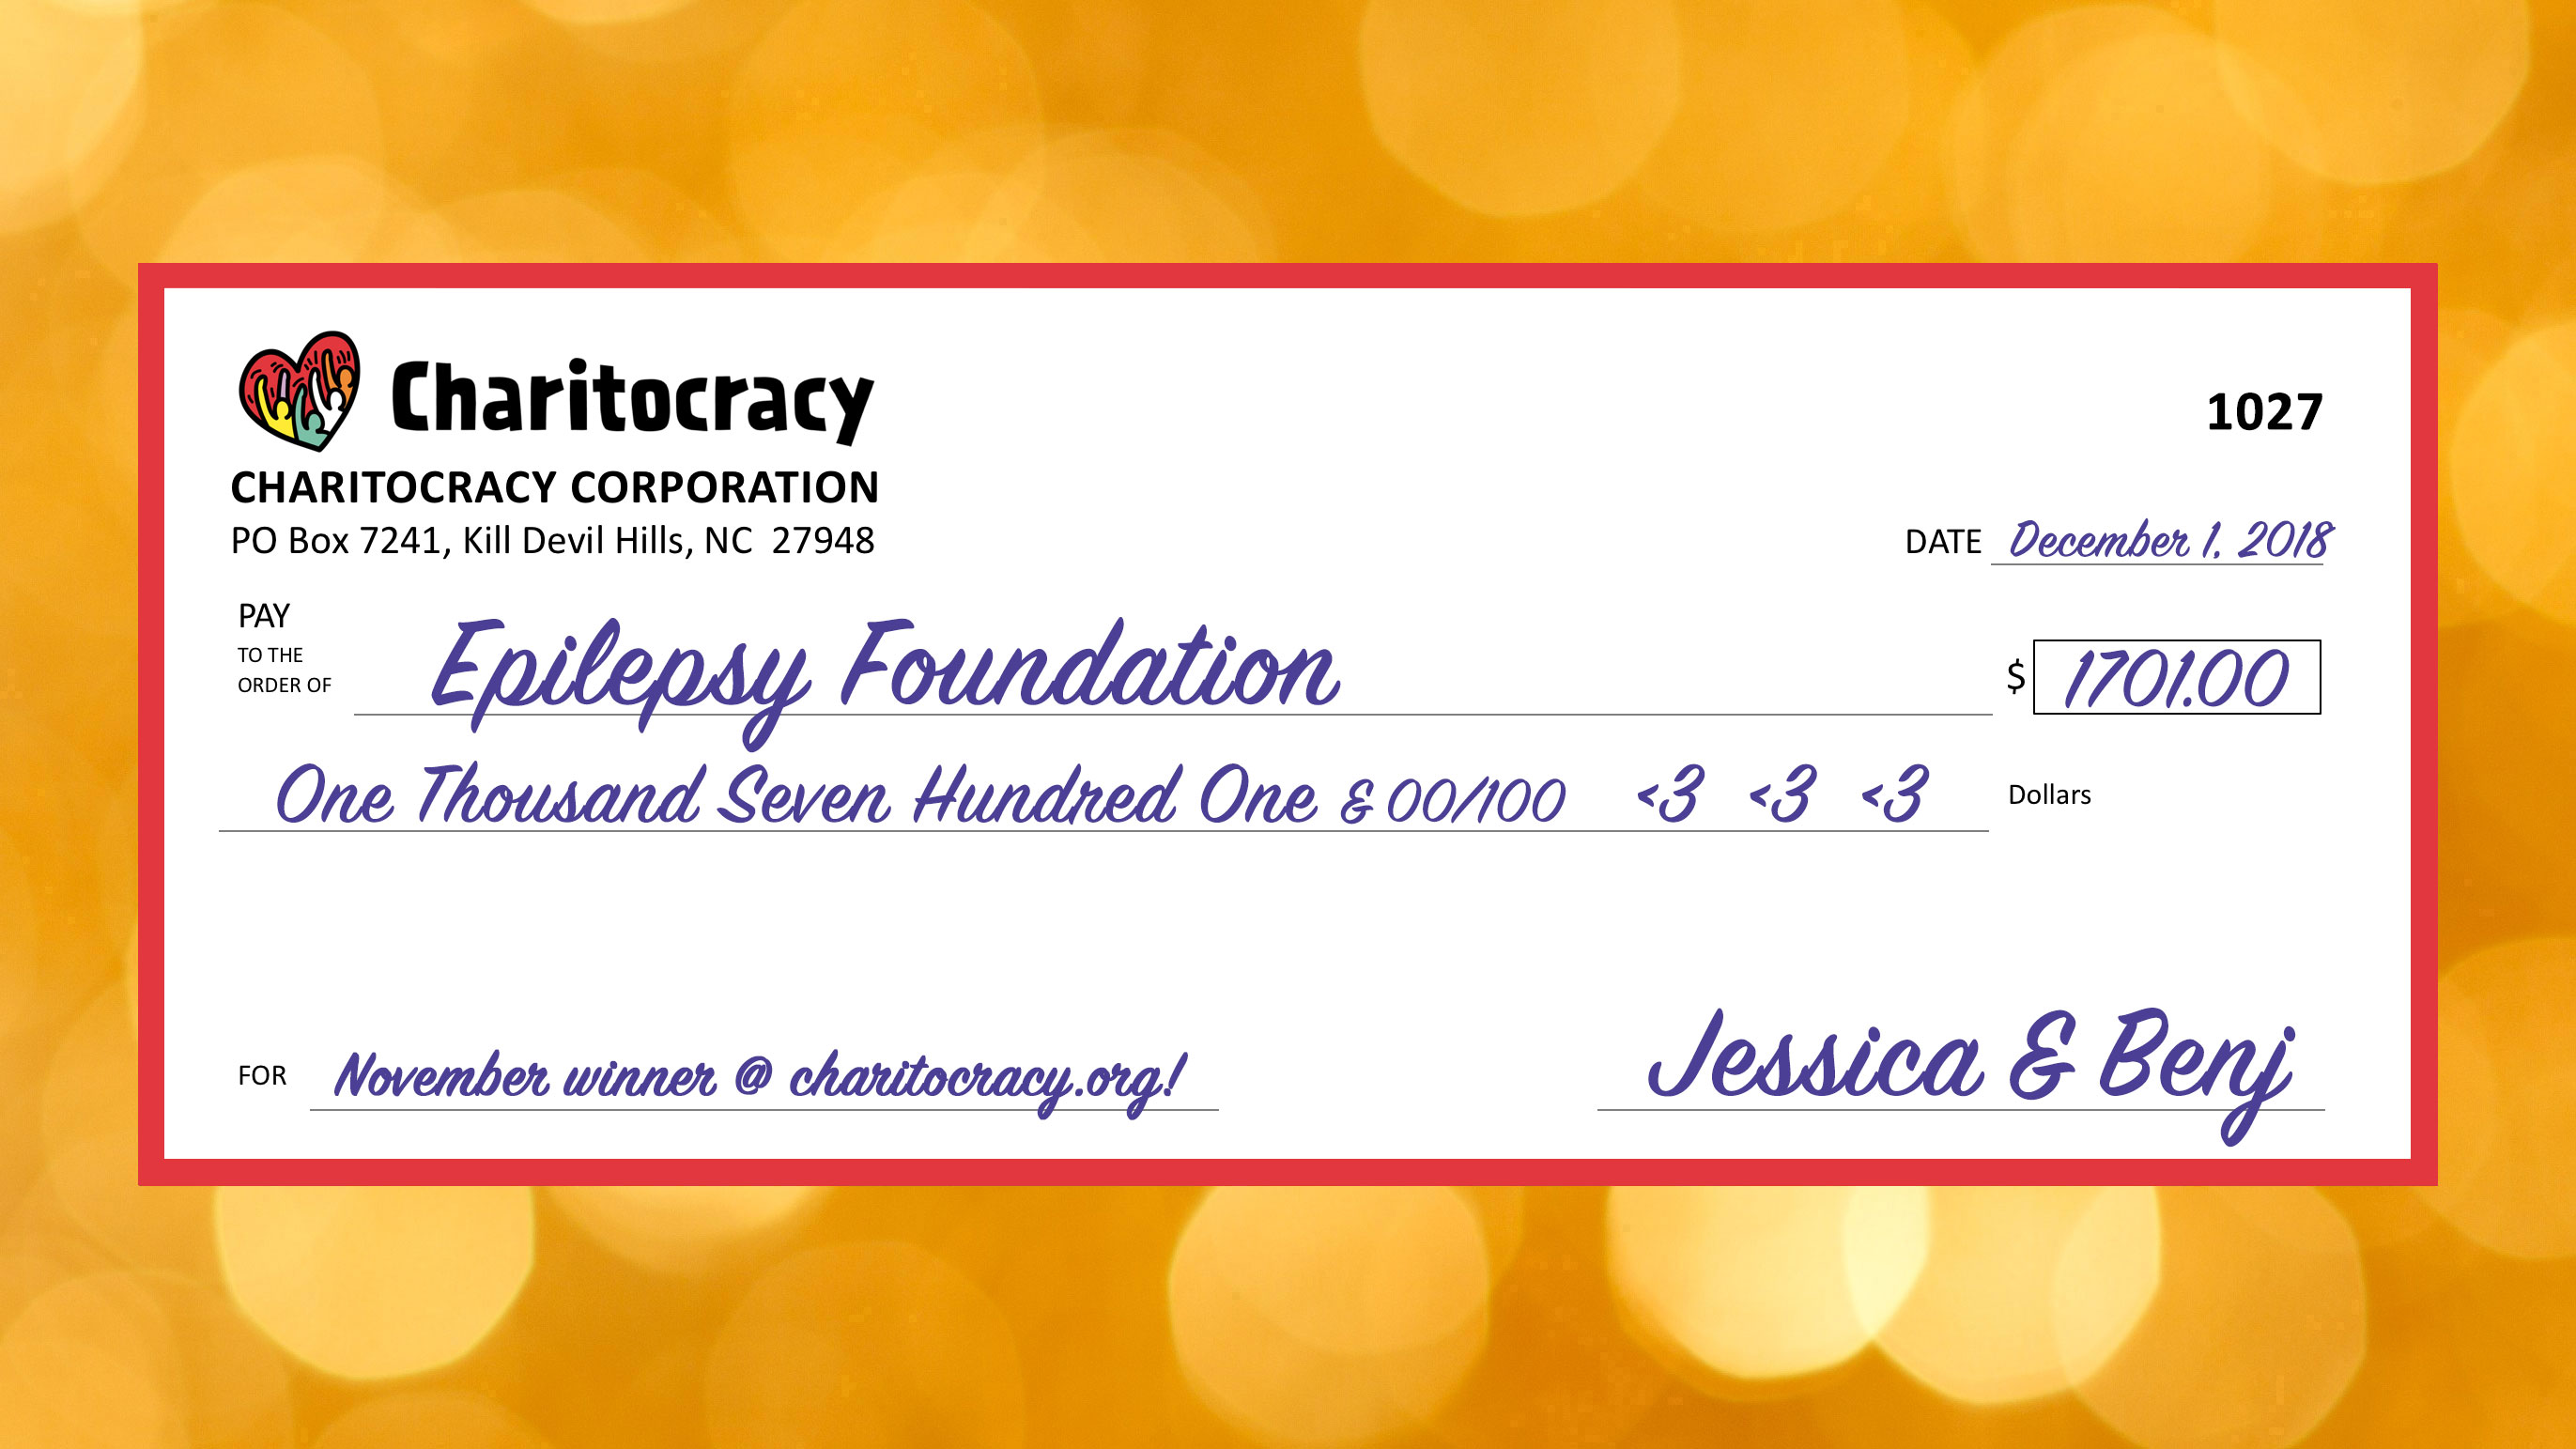 Charitocracy's 27th check: to Epilepsy Foundation for $1701